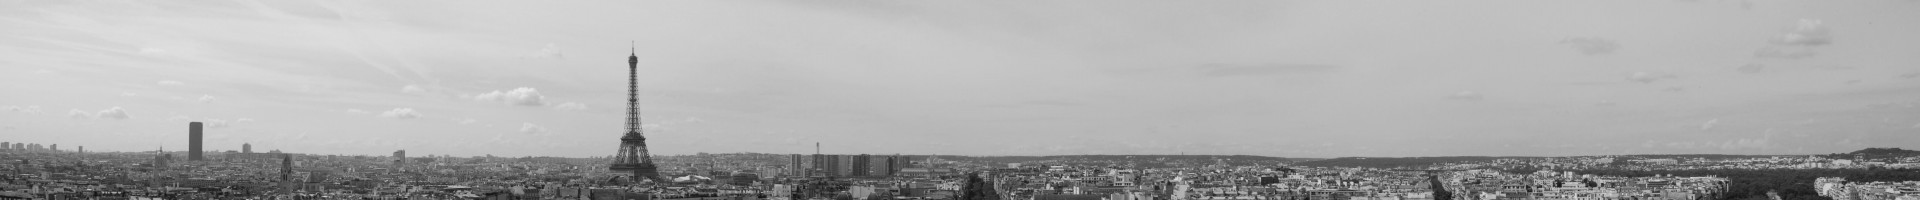 Panorama_of_Paris_from_top_of_Arc_de_Triomphe